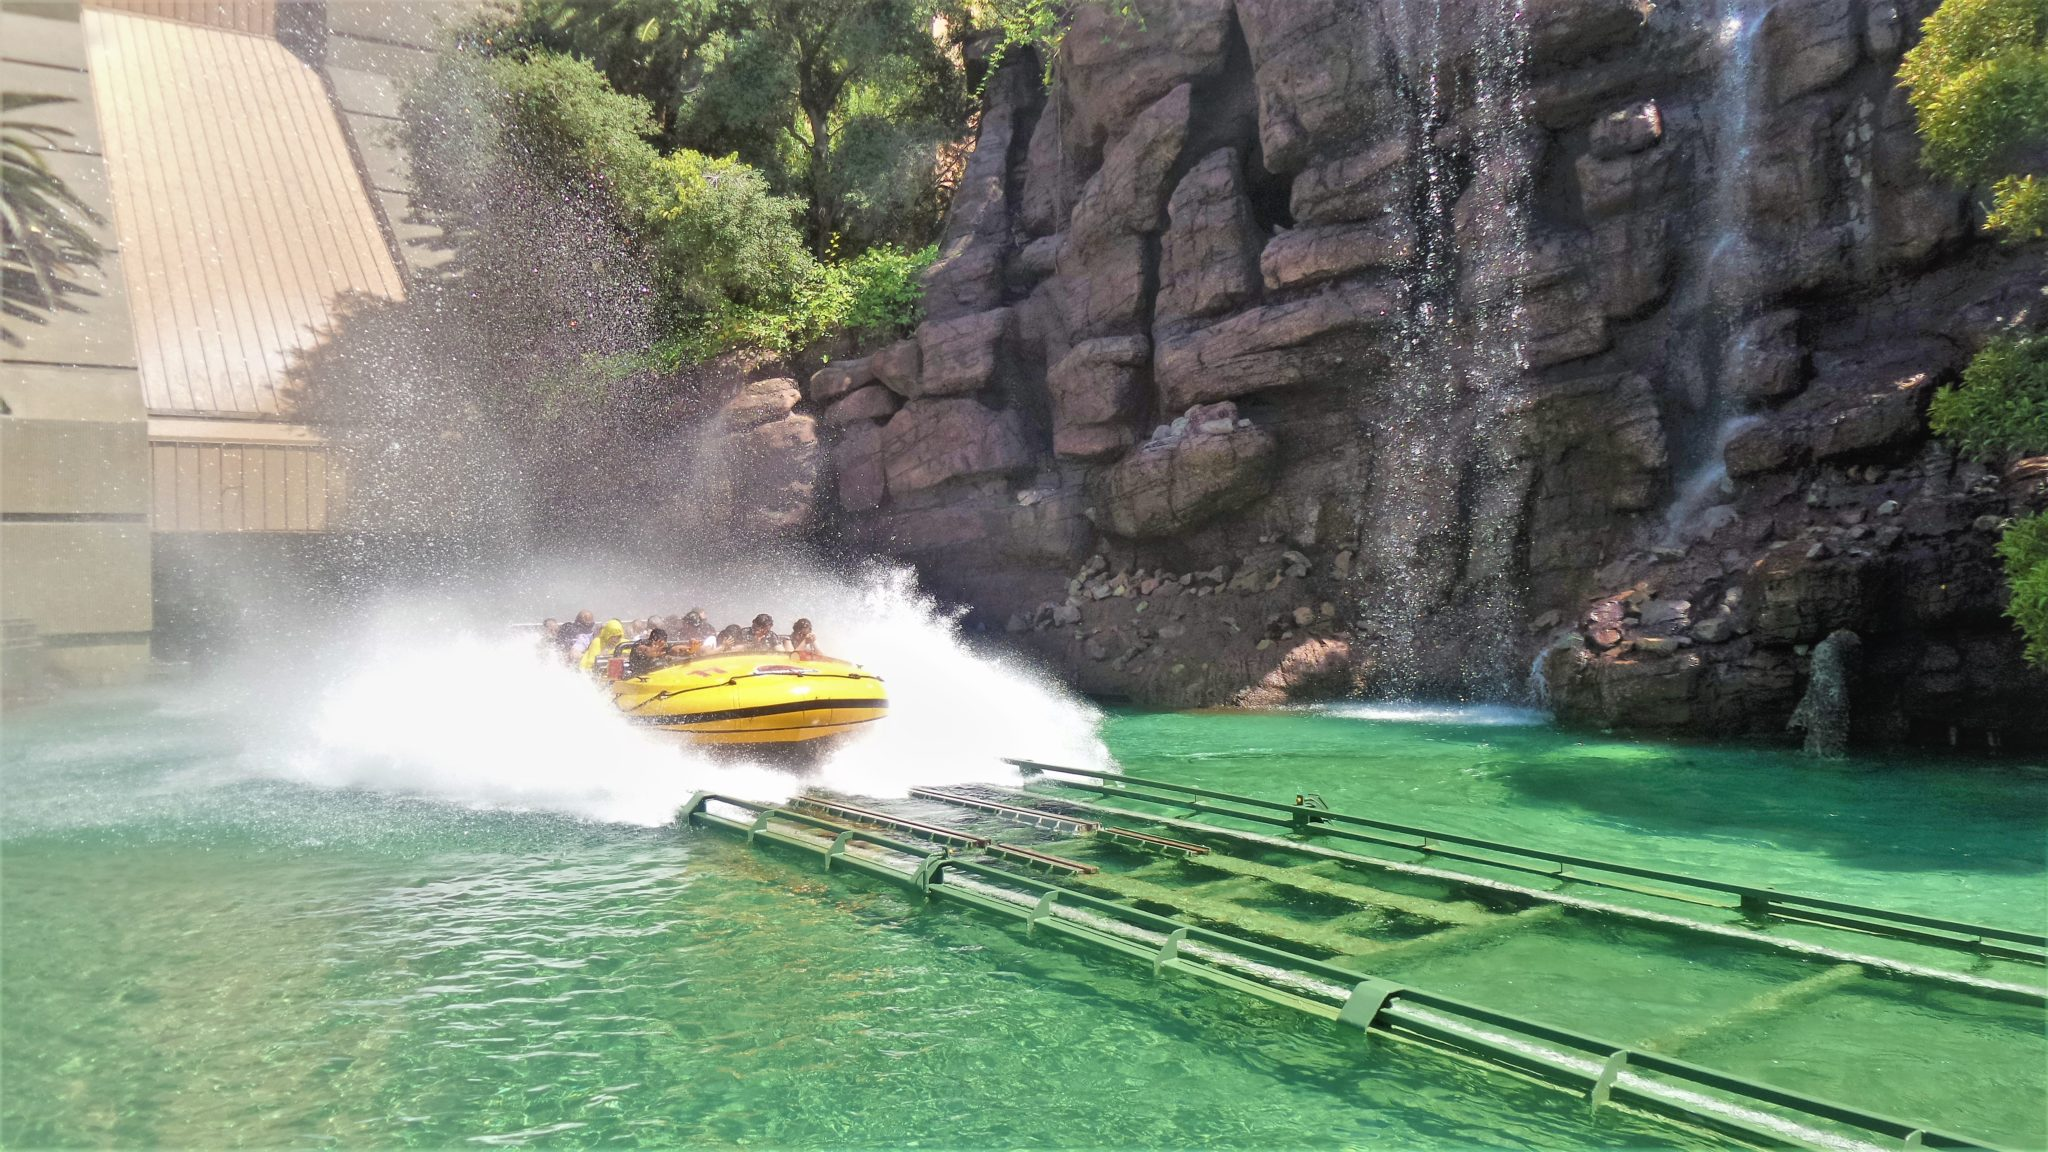 Jurassic park water ride universal studios hollywood attractions